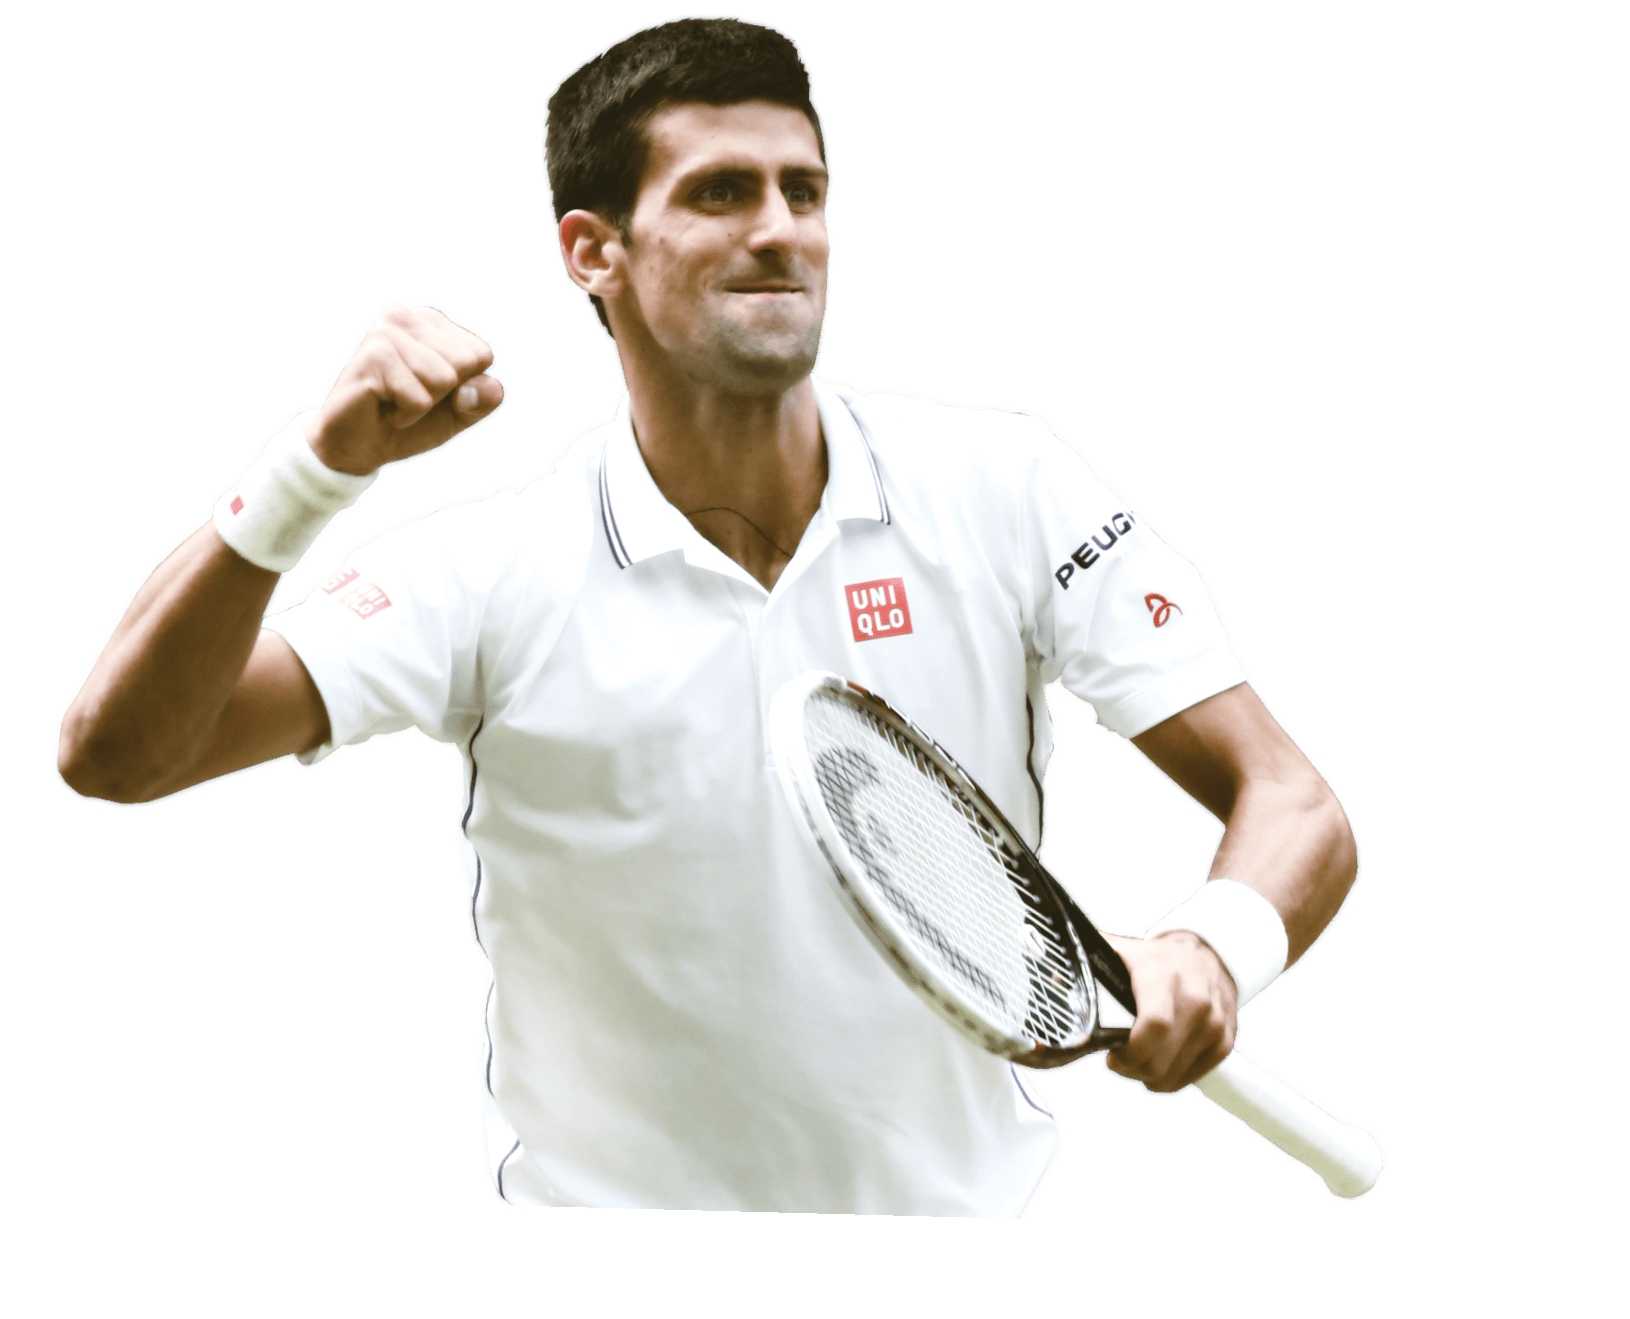 Download · celebrities · sports celebr-Download · celebrities · sports celebrities · novak djokovic-4